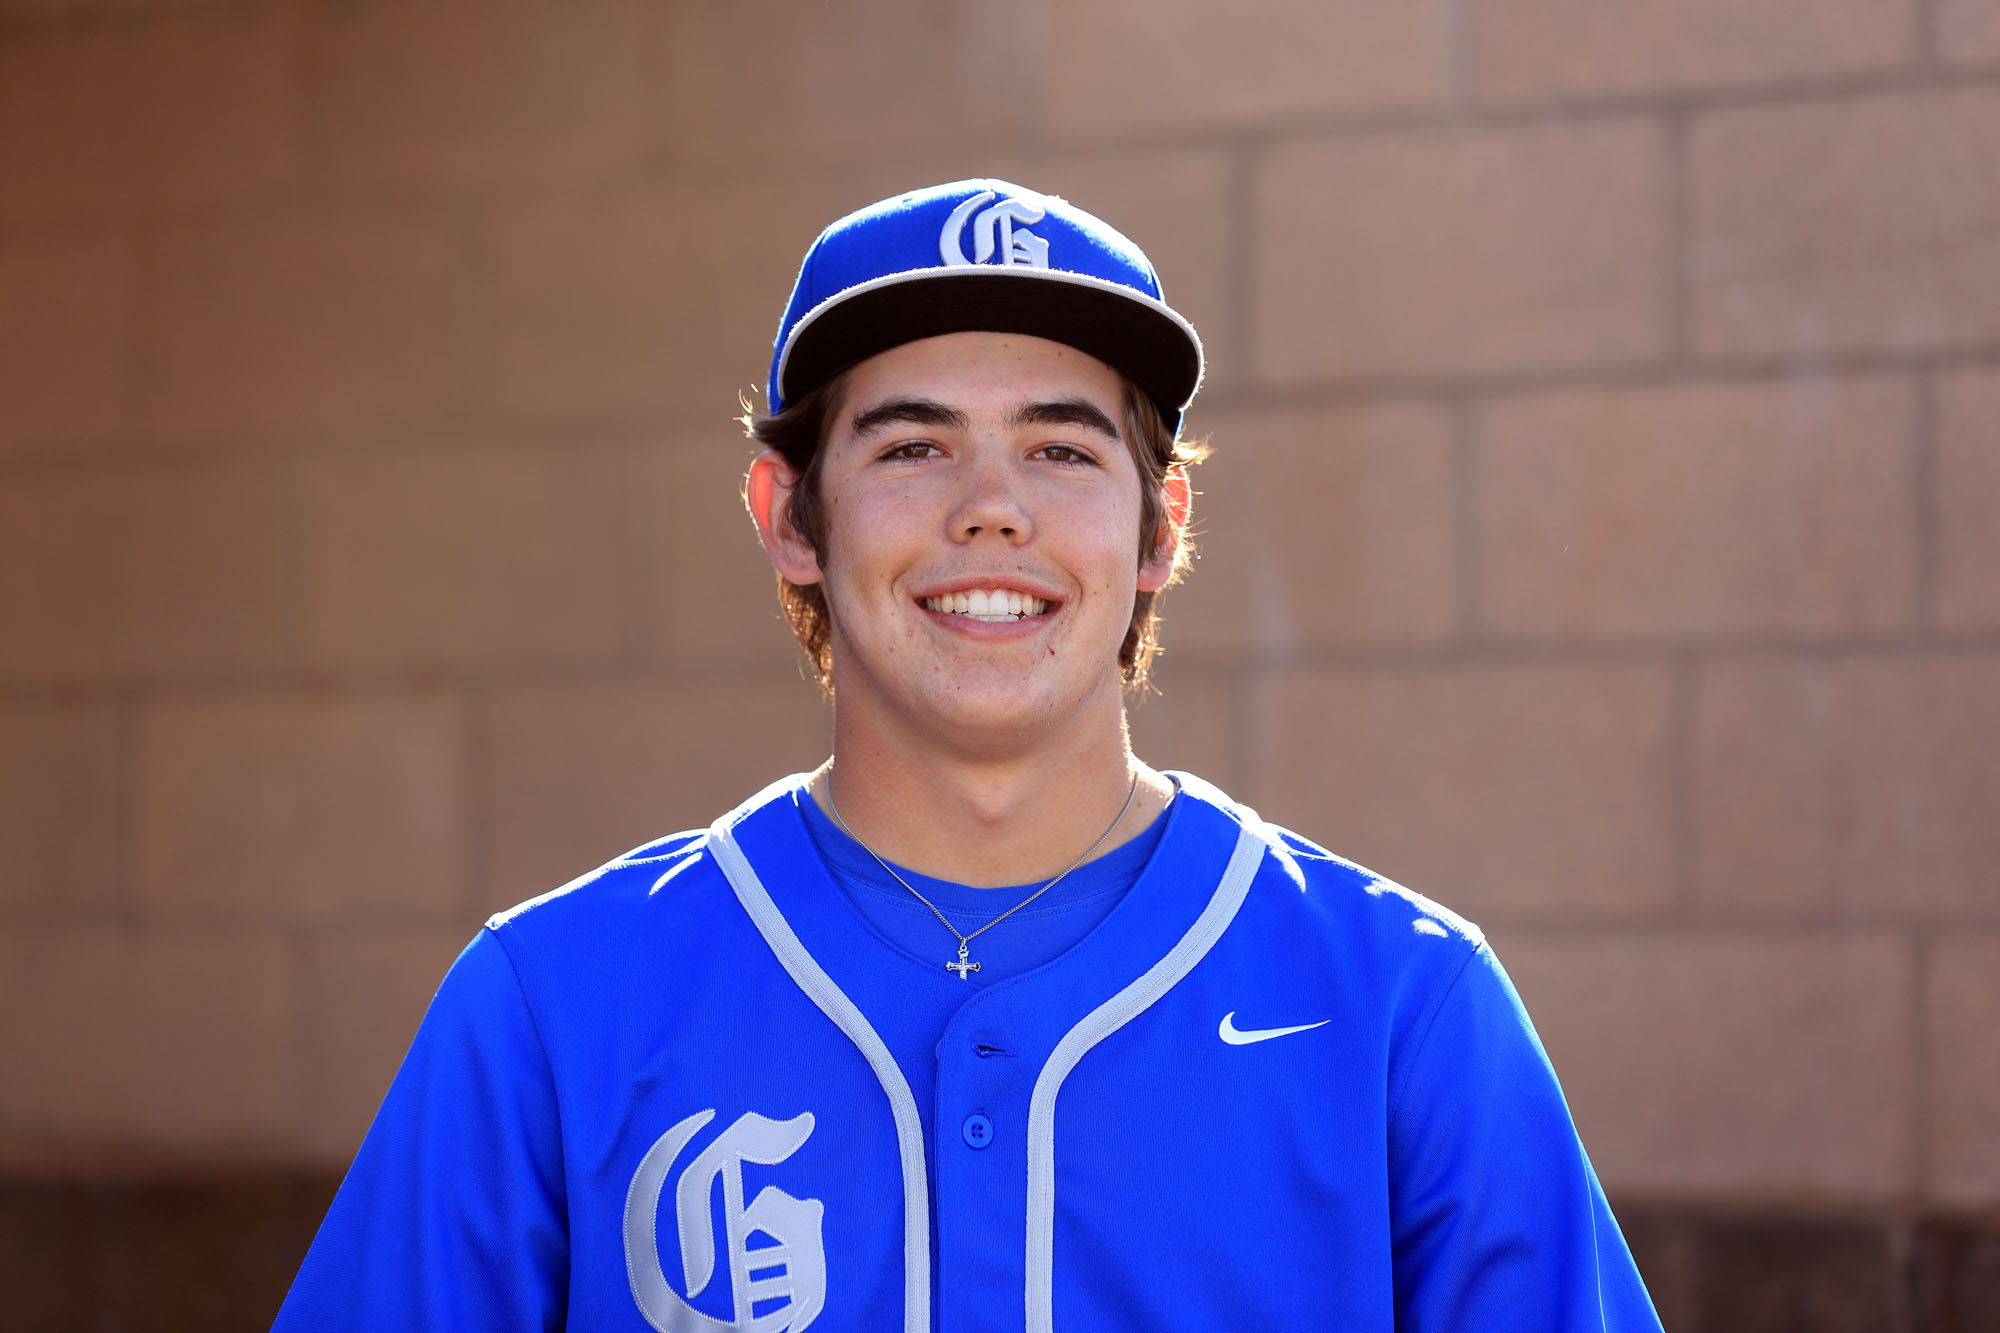 Bishop Gorman's Jack Little  (Photo: Greg Cava, Bishop Gorman)